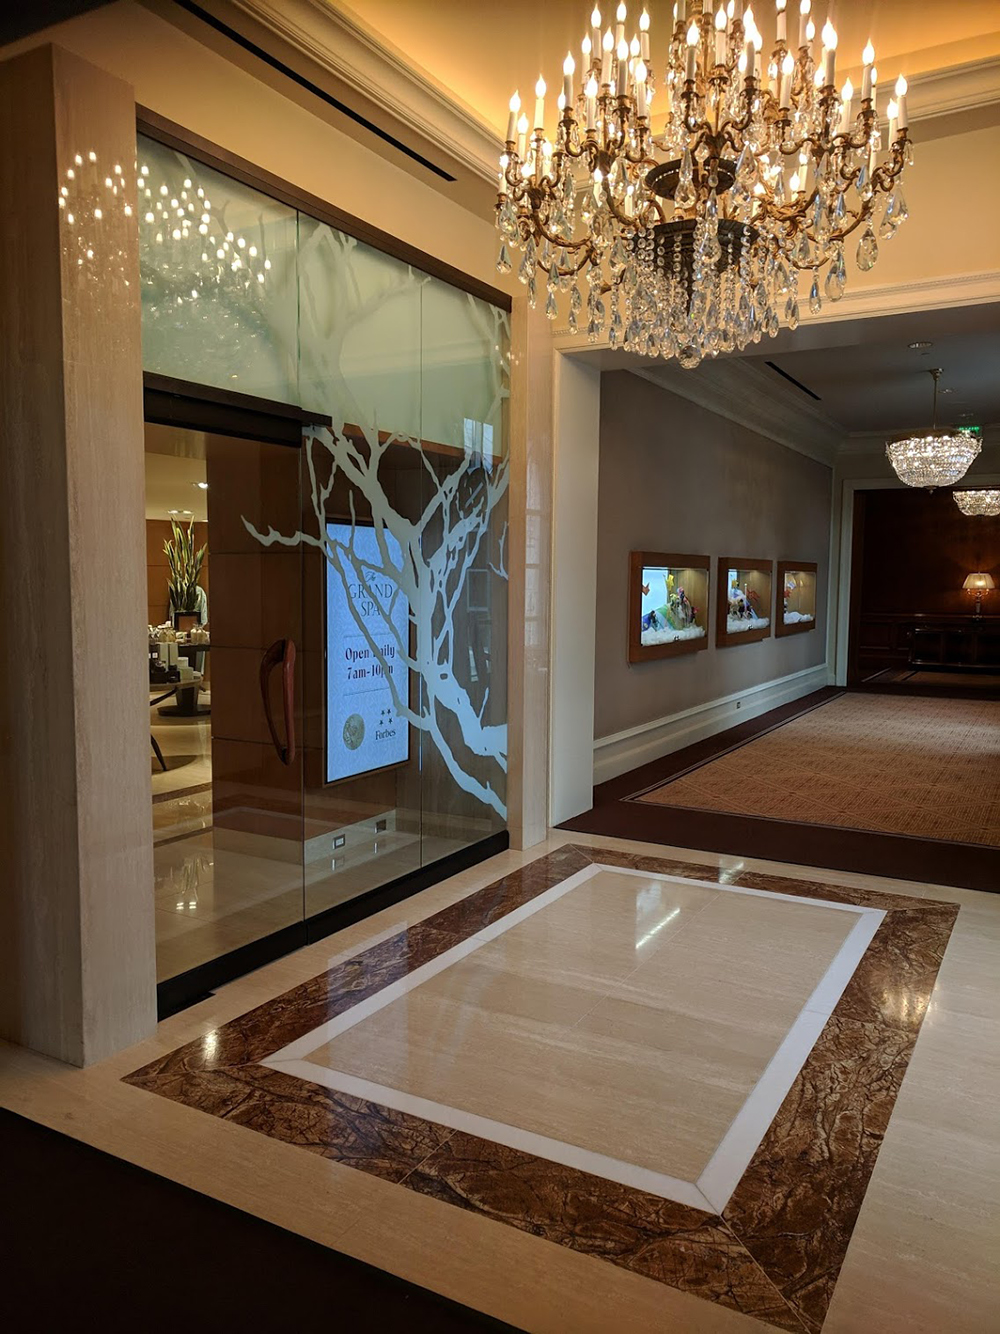 Walking into The Spa at The Grand.